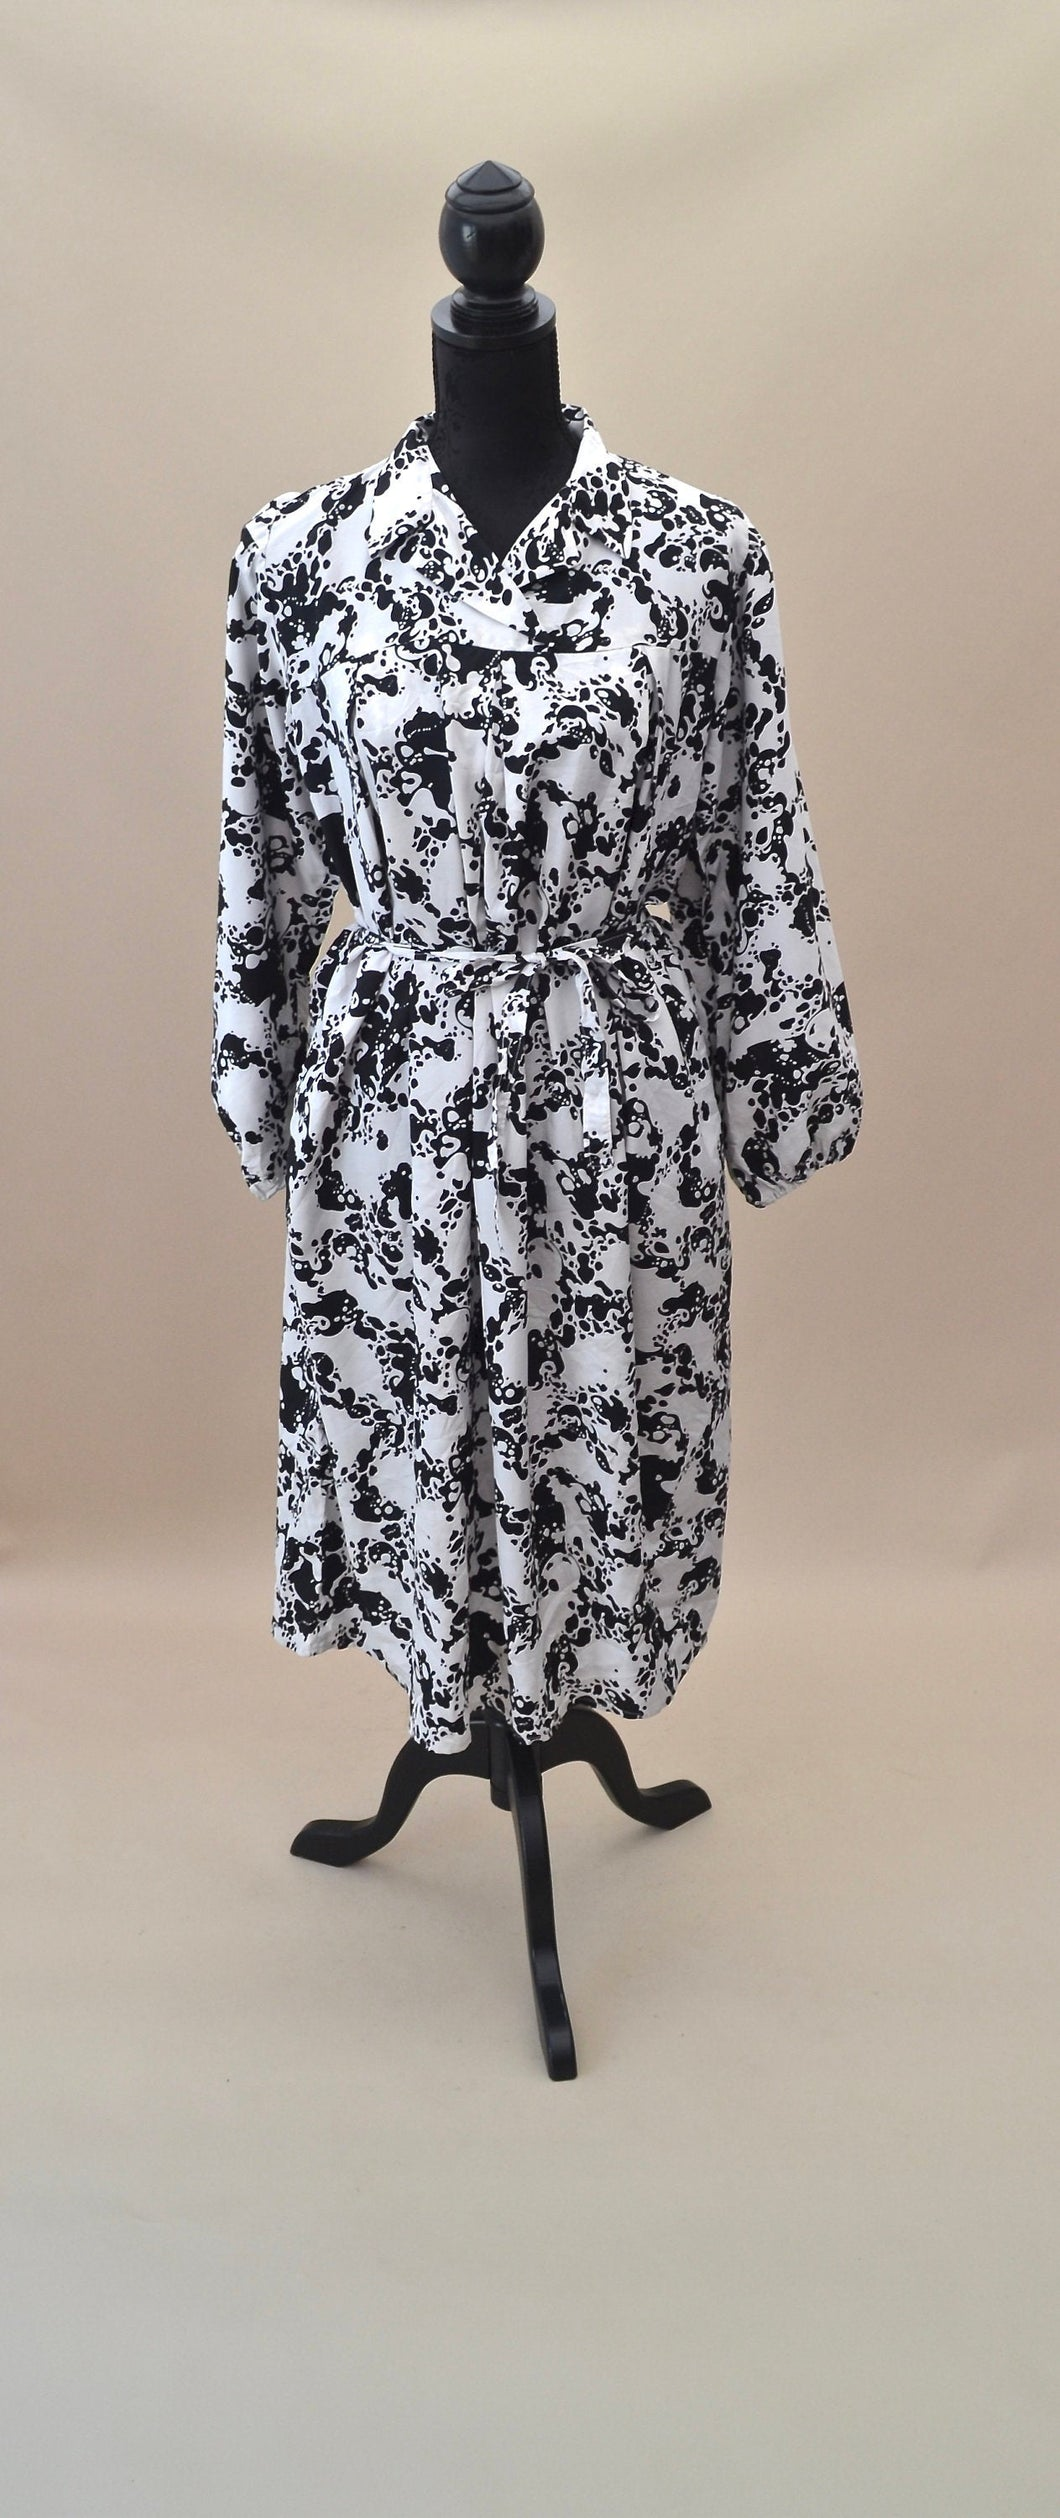 1980s Black and White oversized shirt dress with waist tie, Est UK size 14